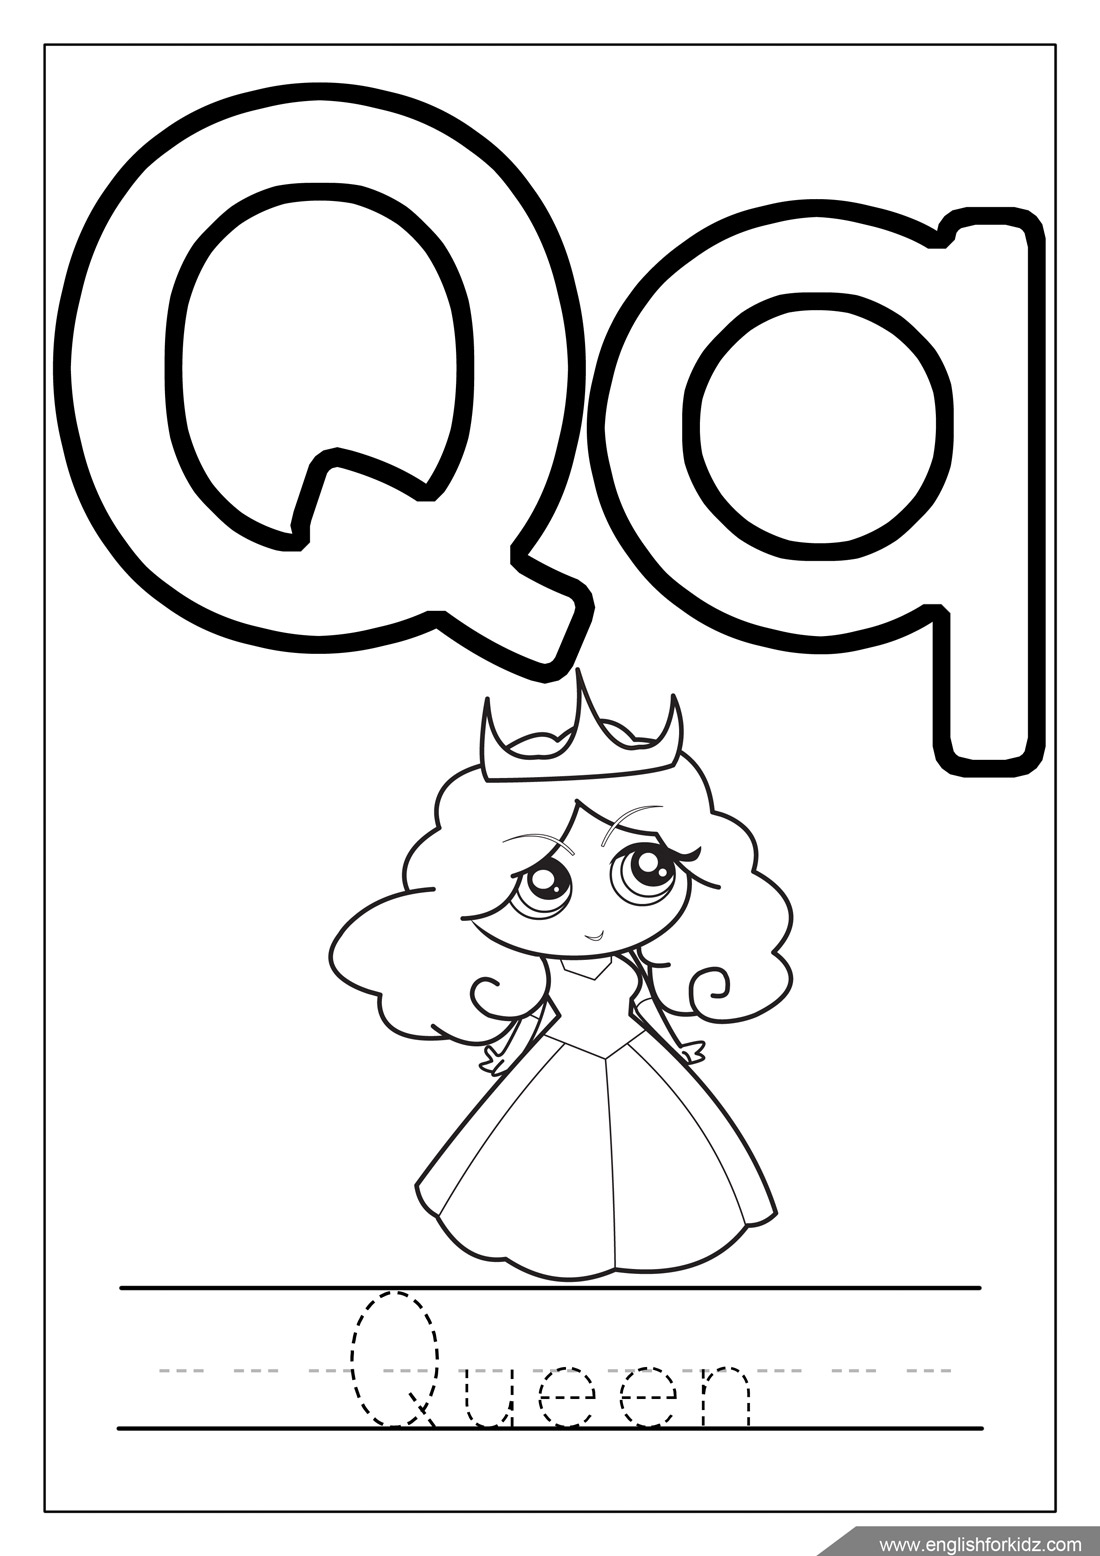 coloring page q letter q coloring page coloring page q